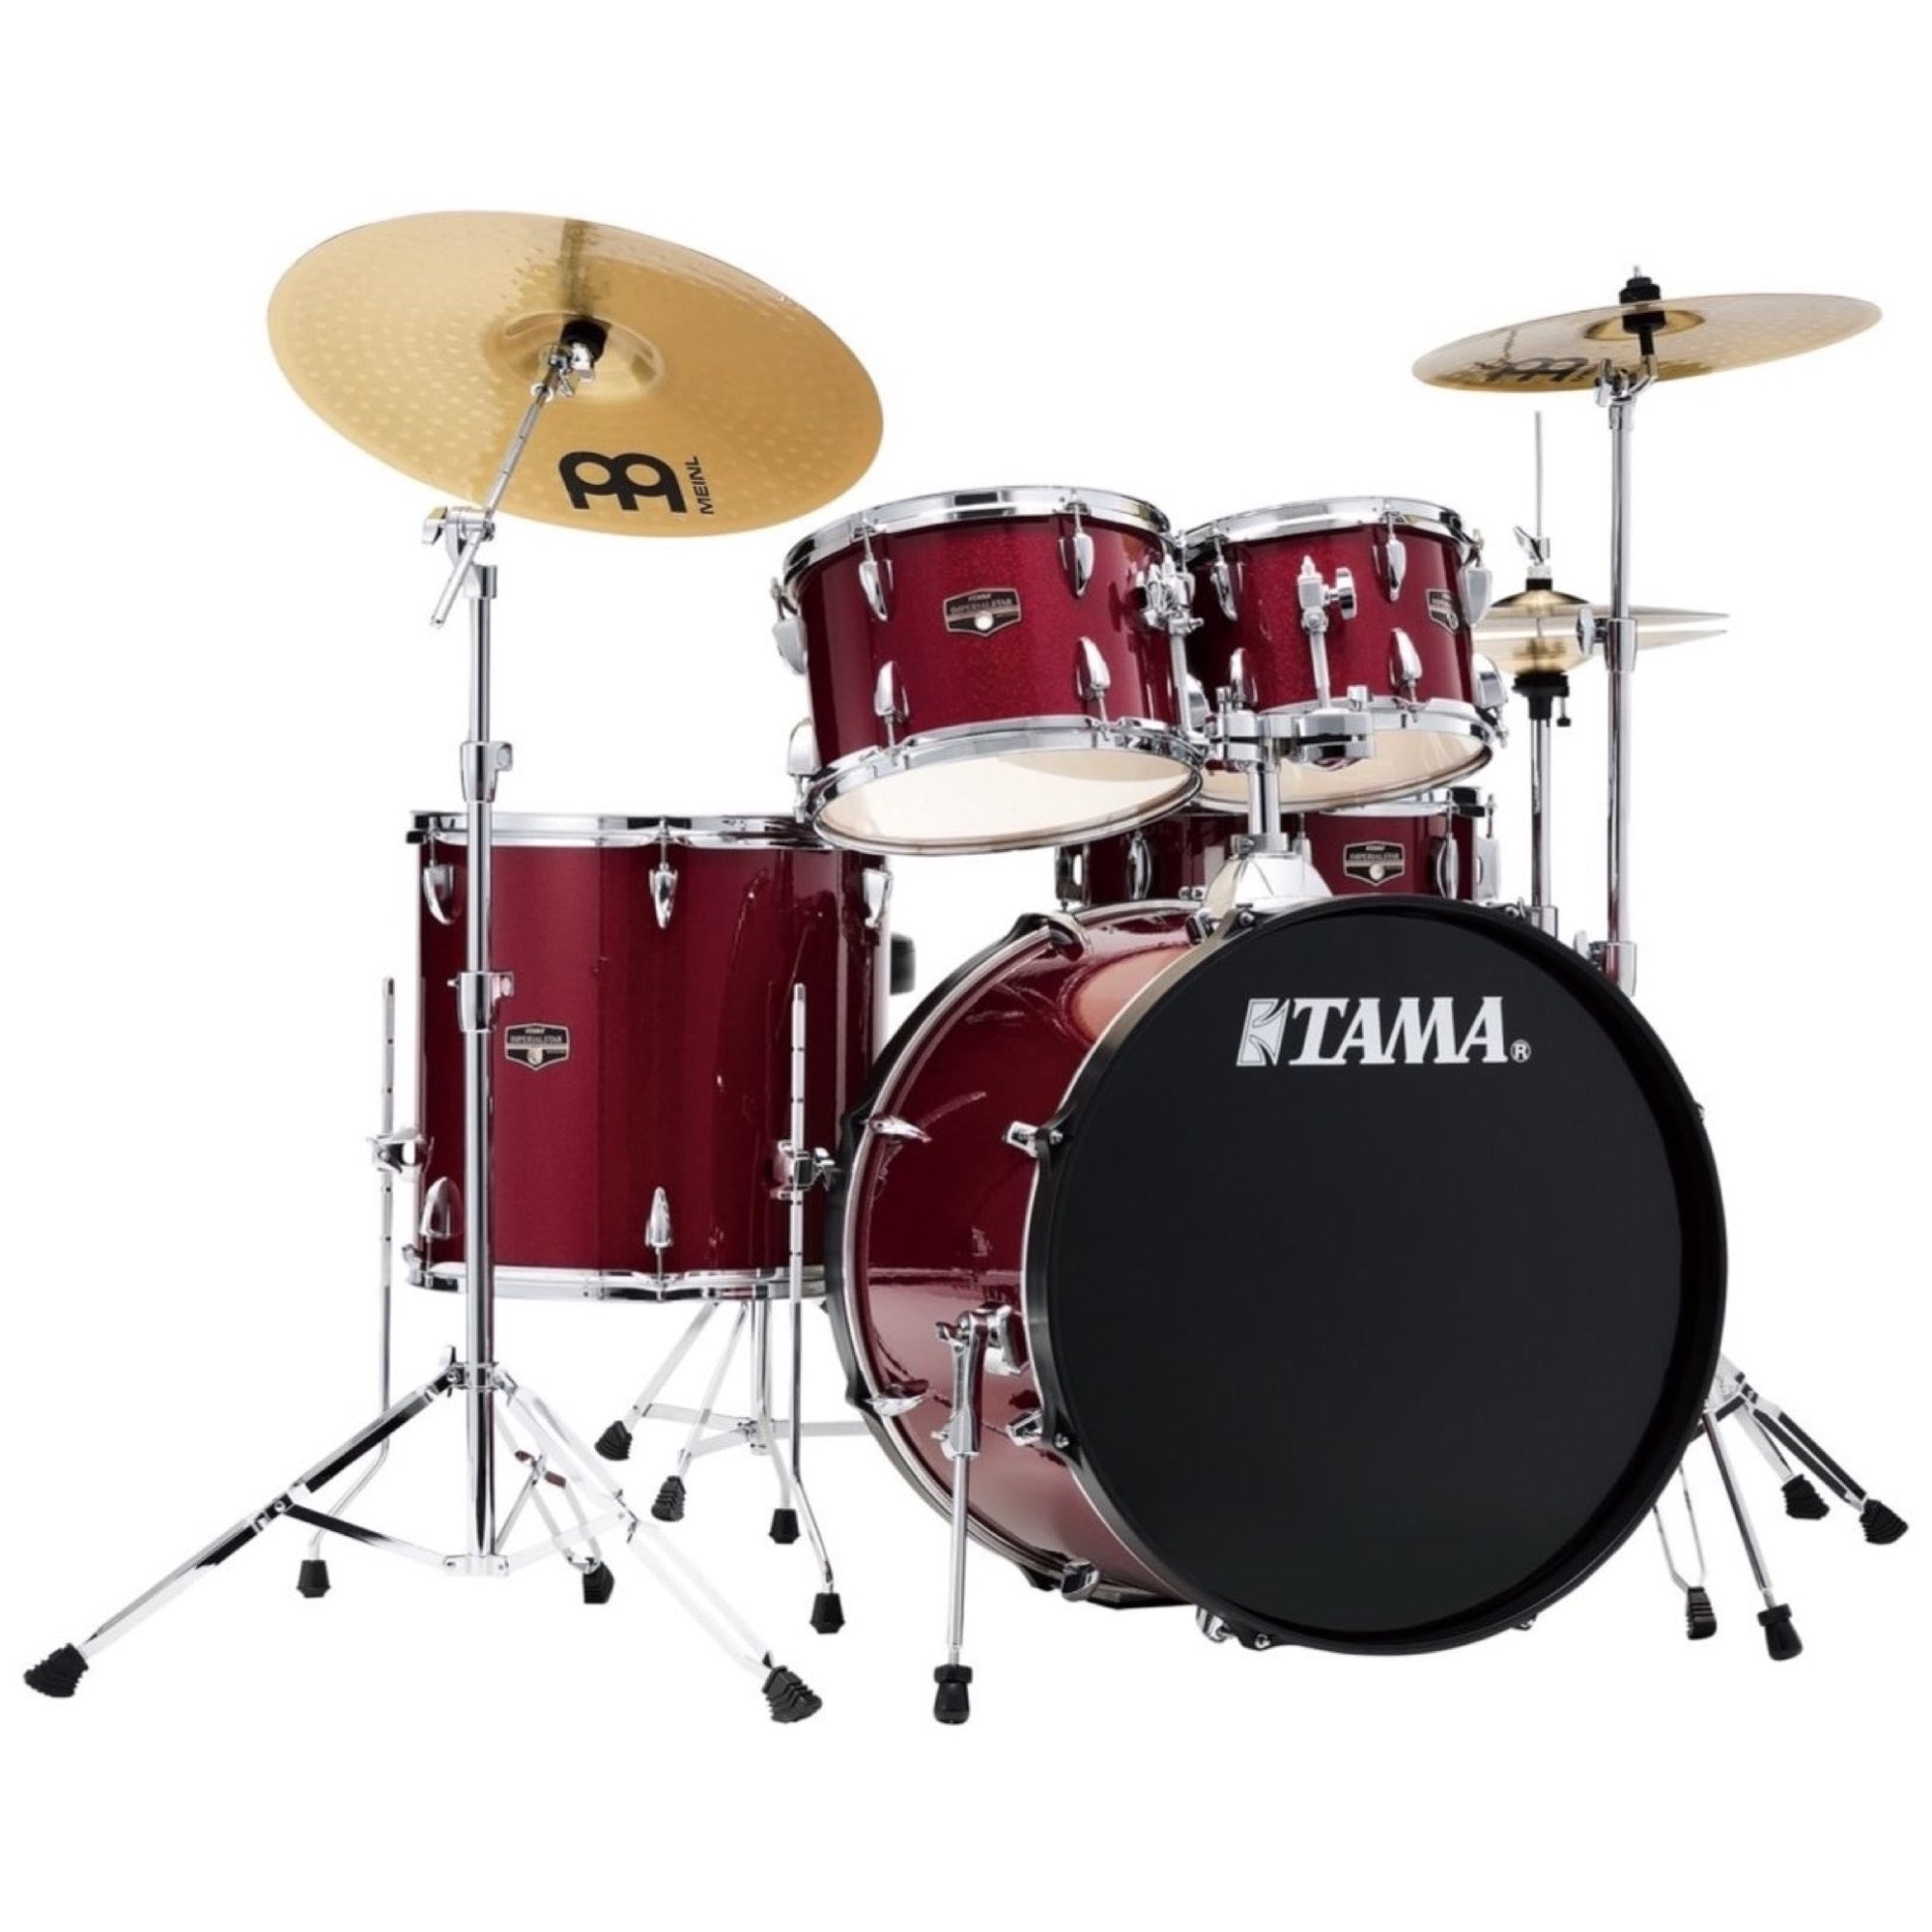 Tama IE52C Imperialstar Drum Kit, 5-Piece (with Meinl Cymbals), Candy Apple Mist